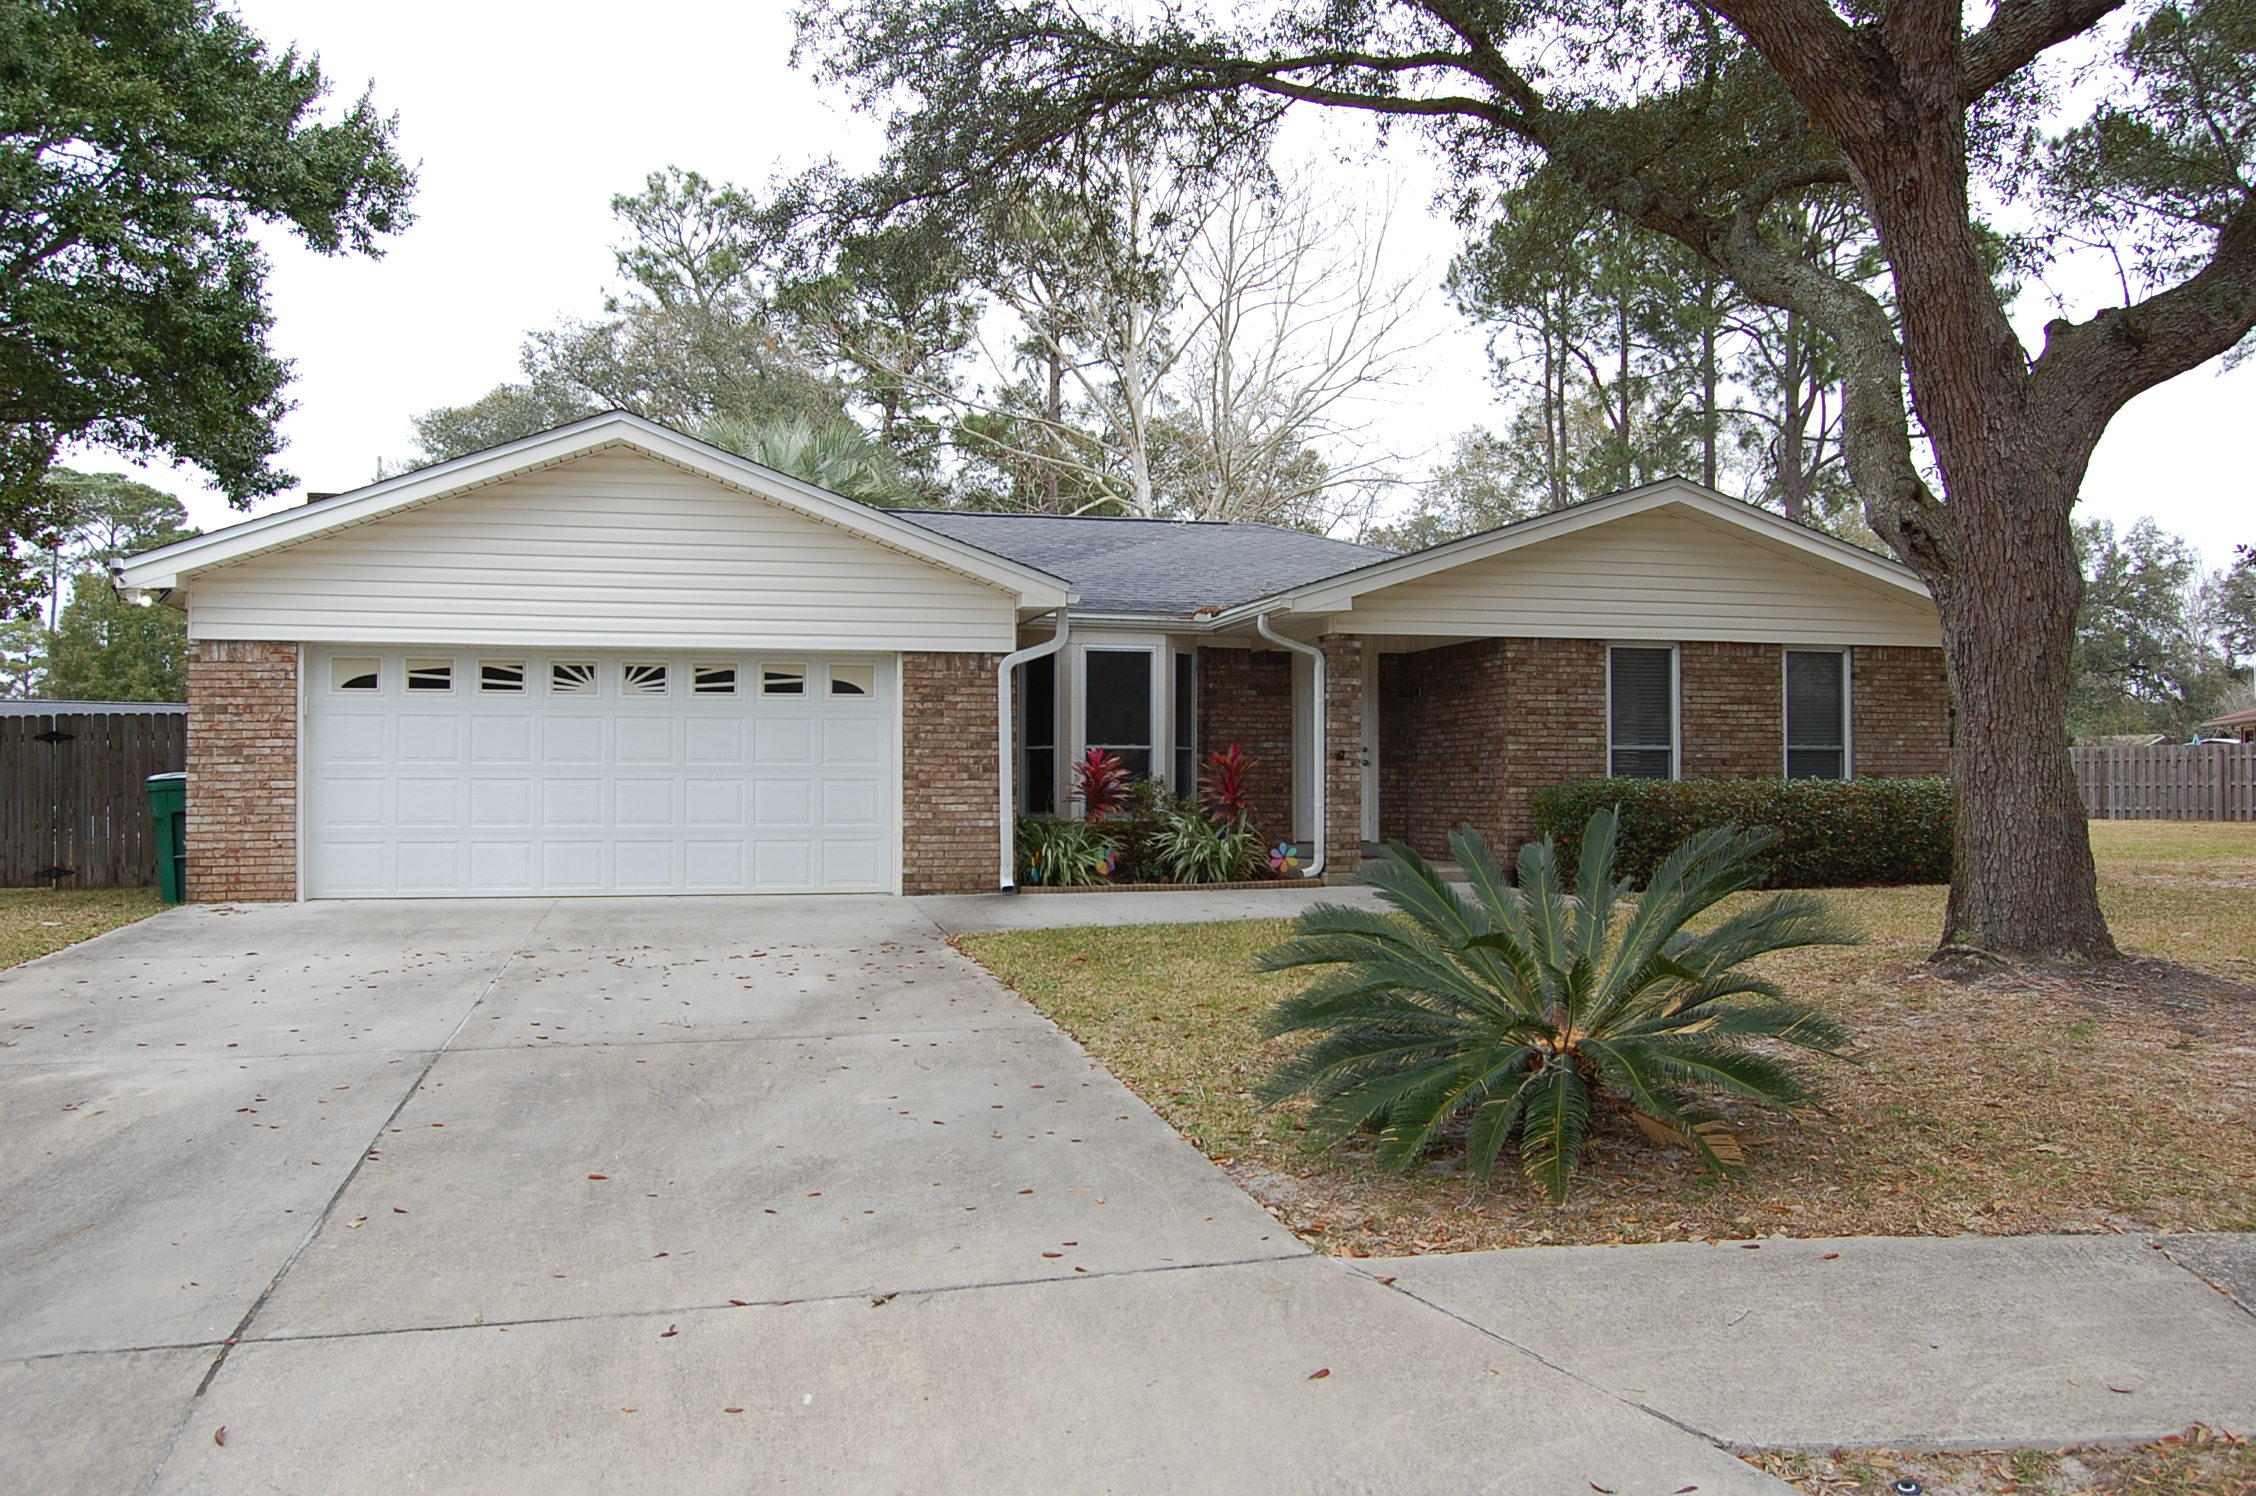 Photo of home for sale at 407 Cheyenne, Fort Walton Beach FL